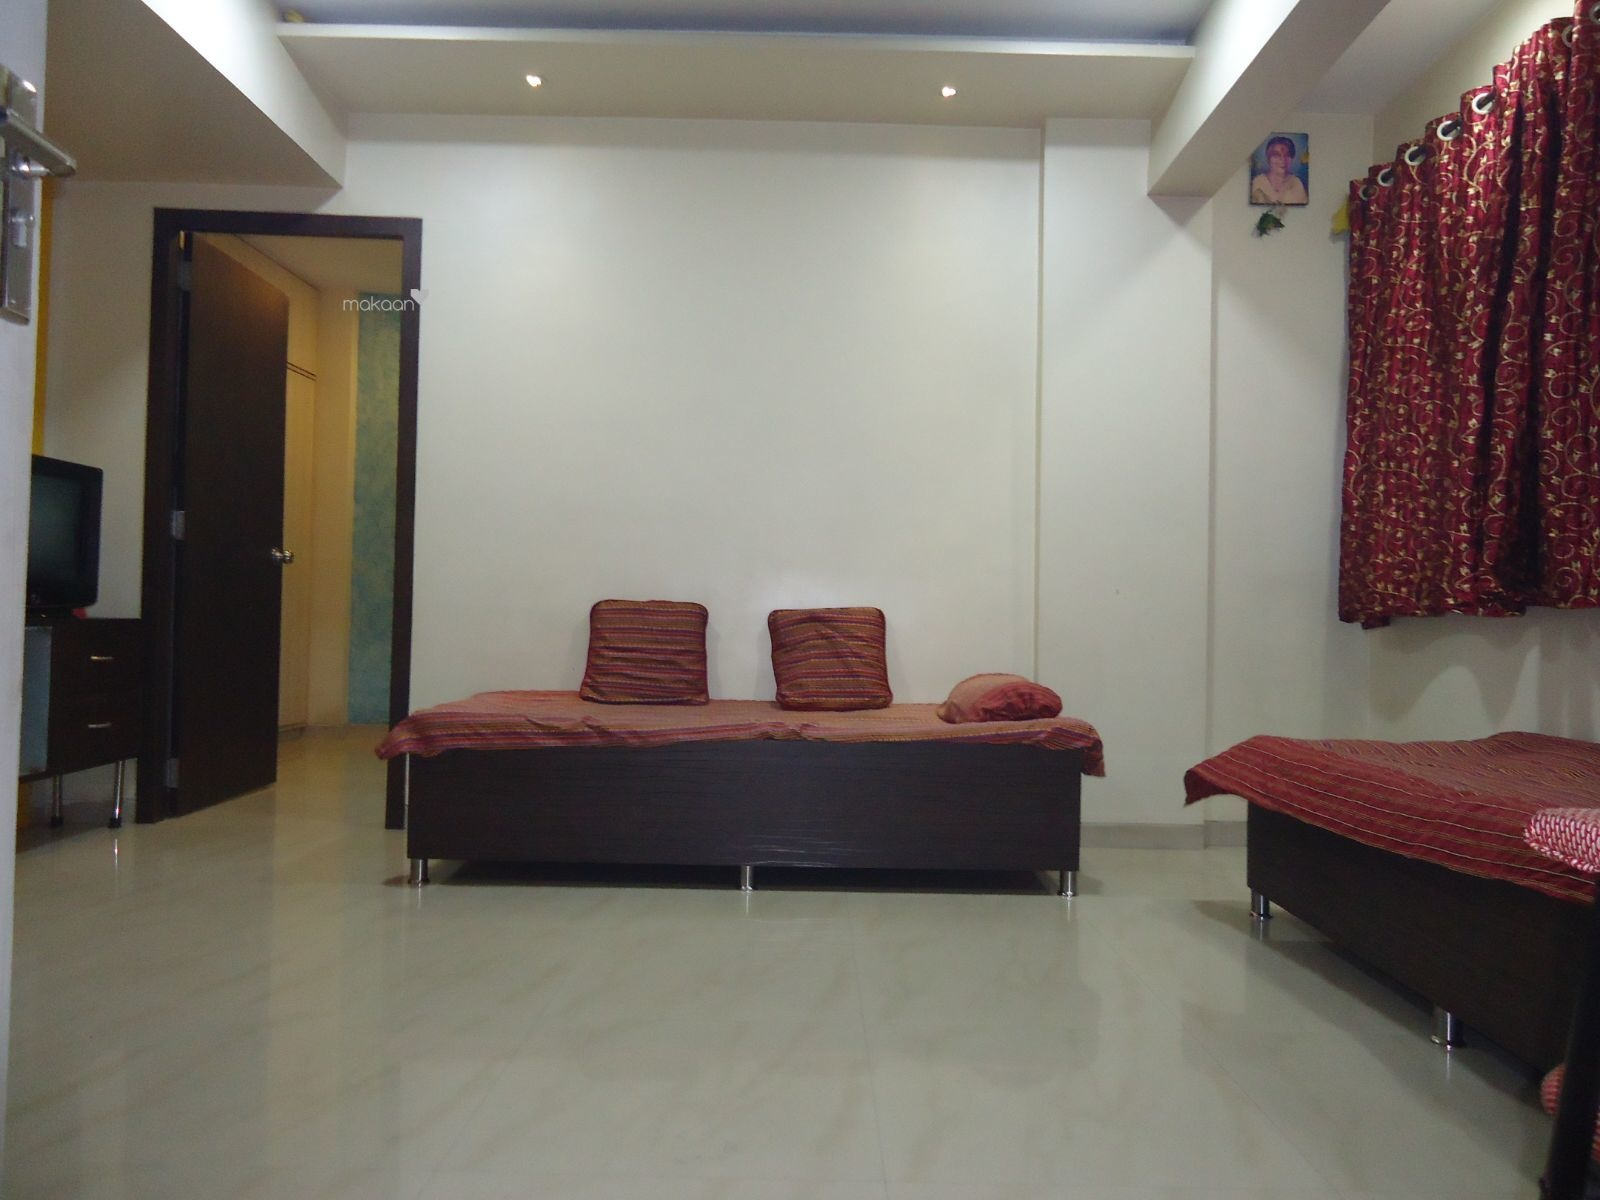 650 sq ft 1BHK 1BHK+1T (650 sq ft) Property By Vijay Estate Agency In Project, Sector-23 Juinagar